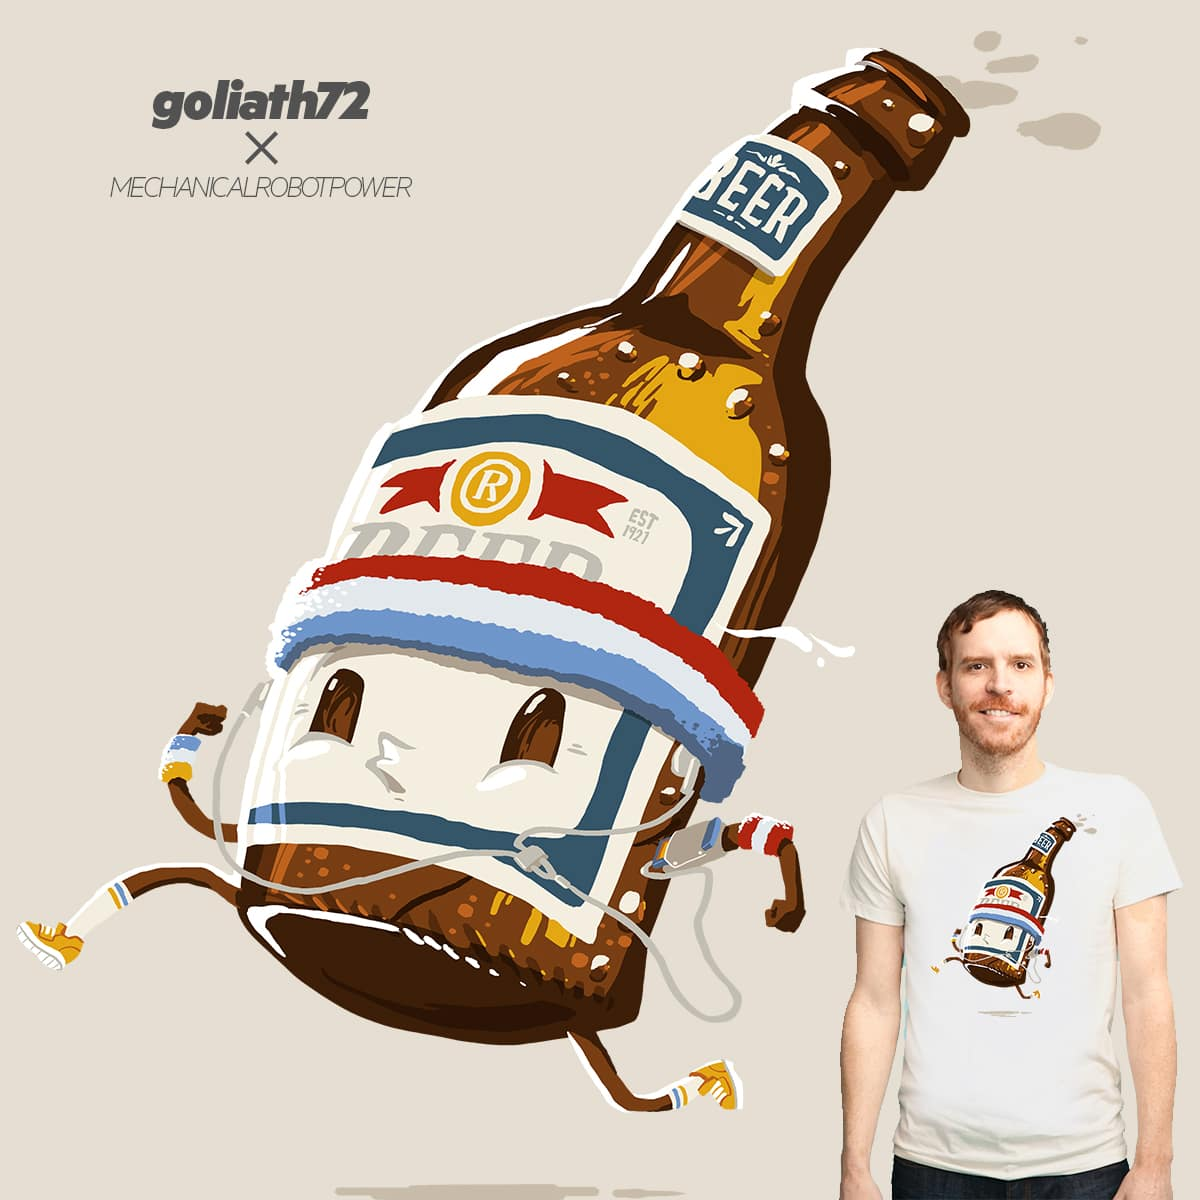 Beer Run by fightstacy and goliath72 on Threadless